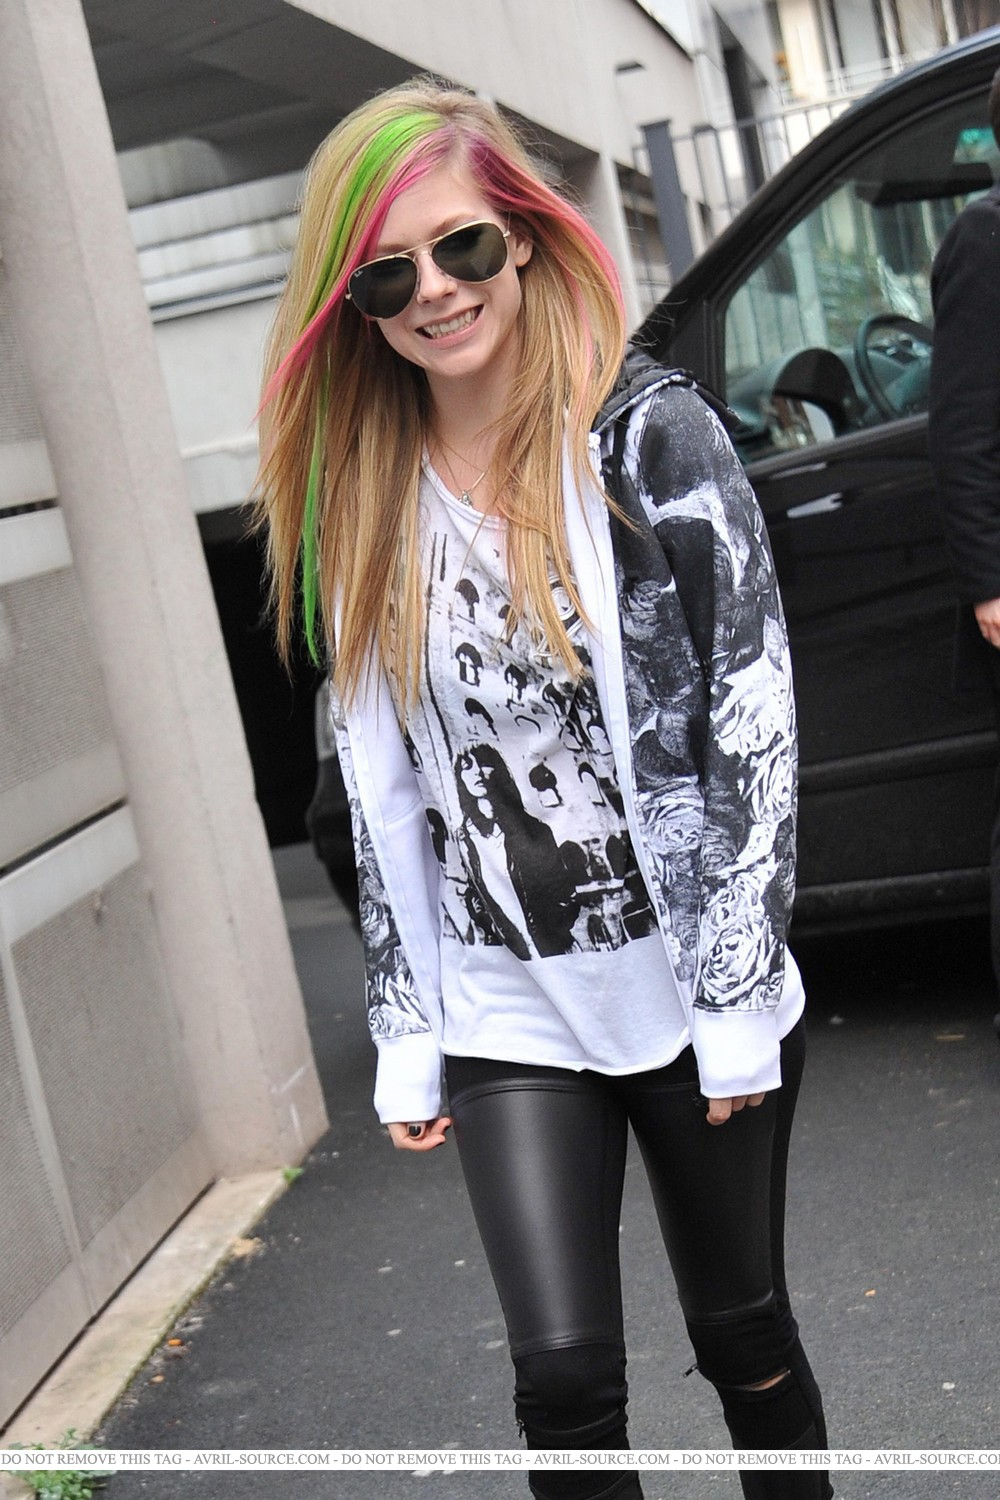 avril lavigne in tights beautiful pictures 2011